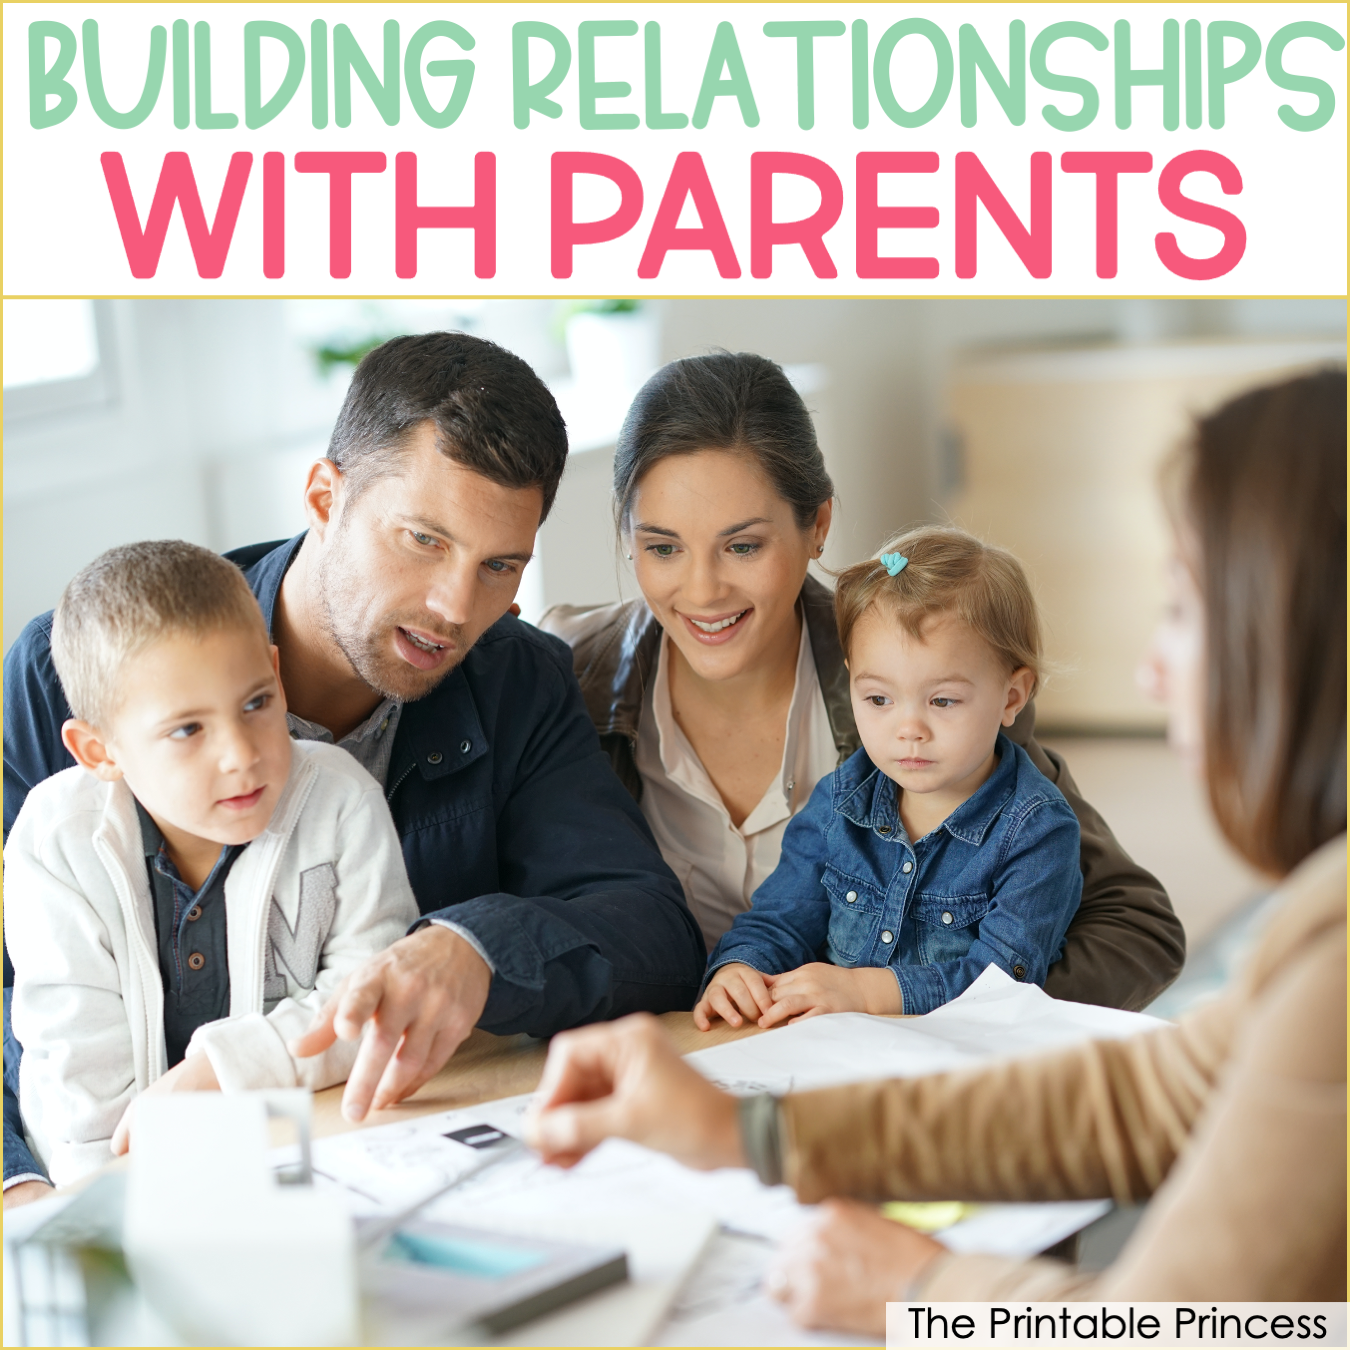 Tips for Positive Communication With Parents